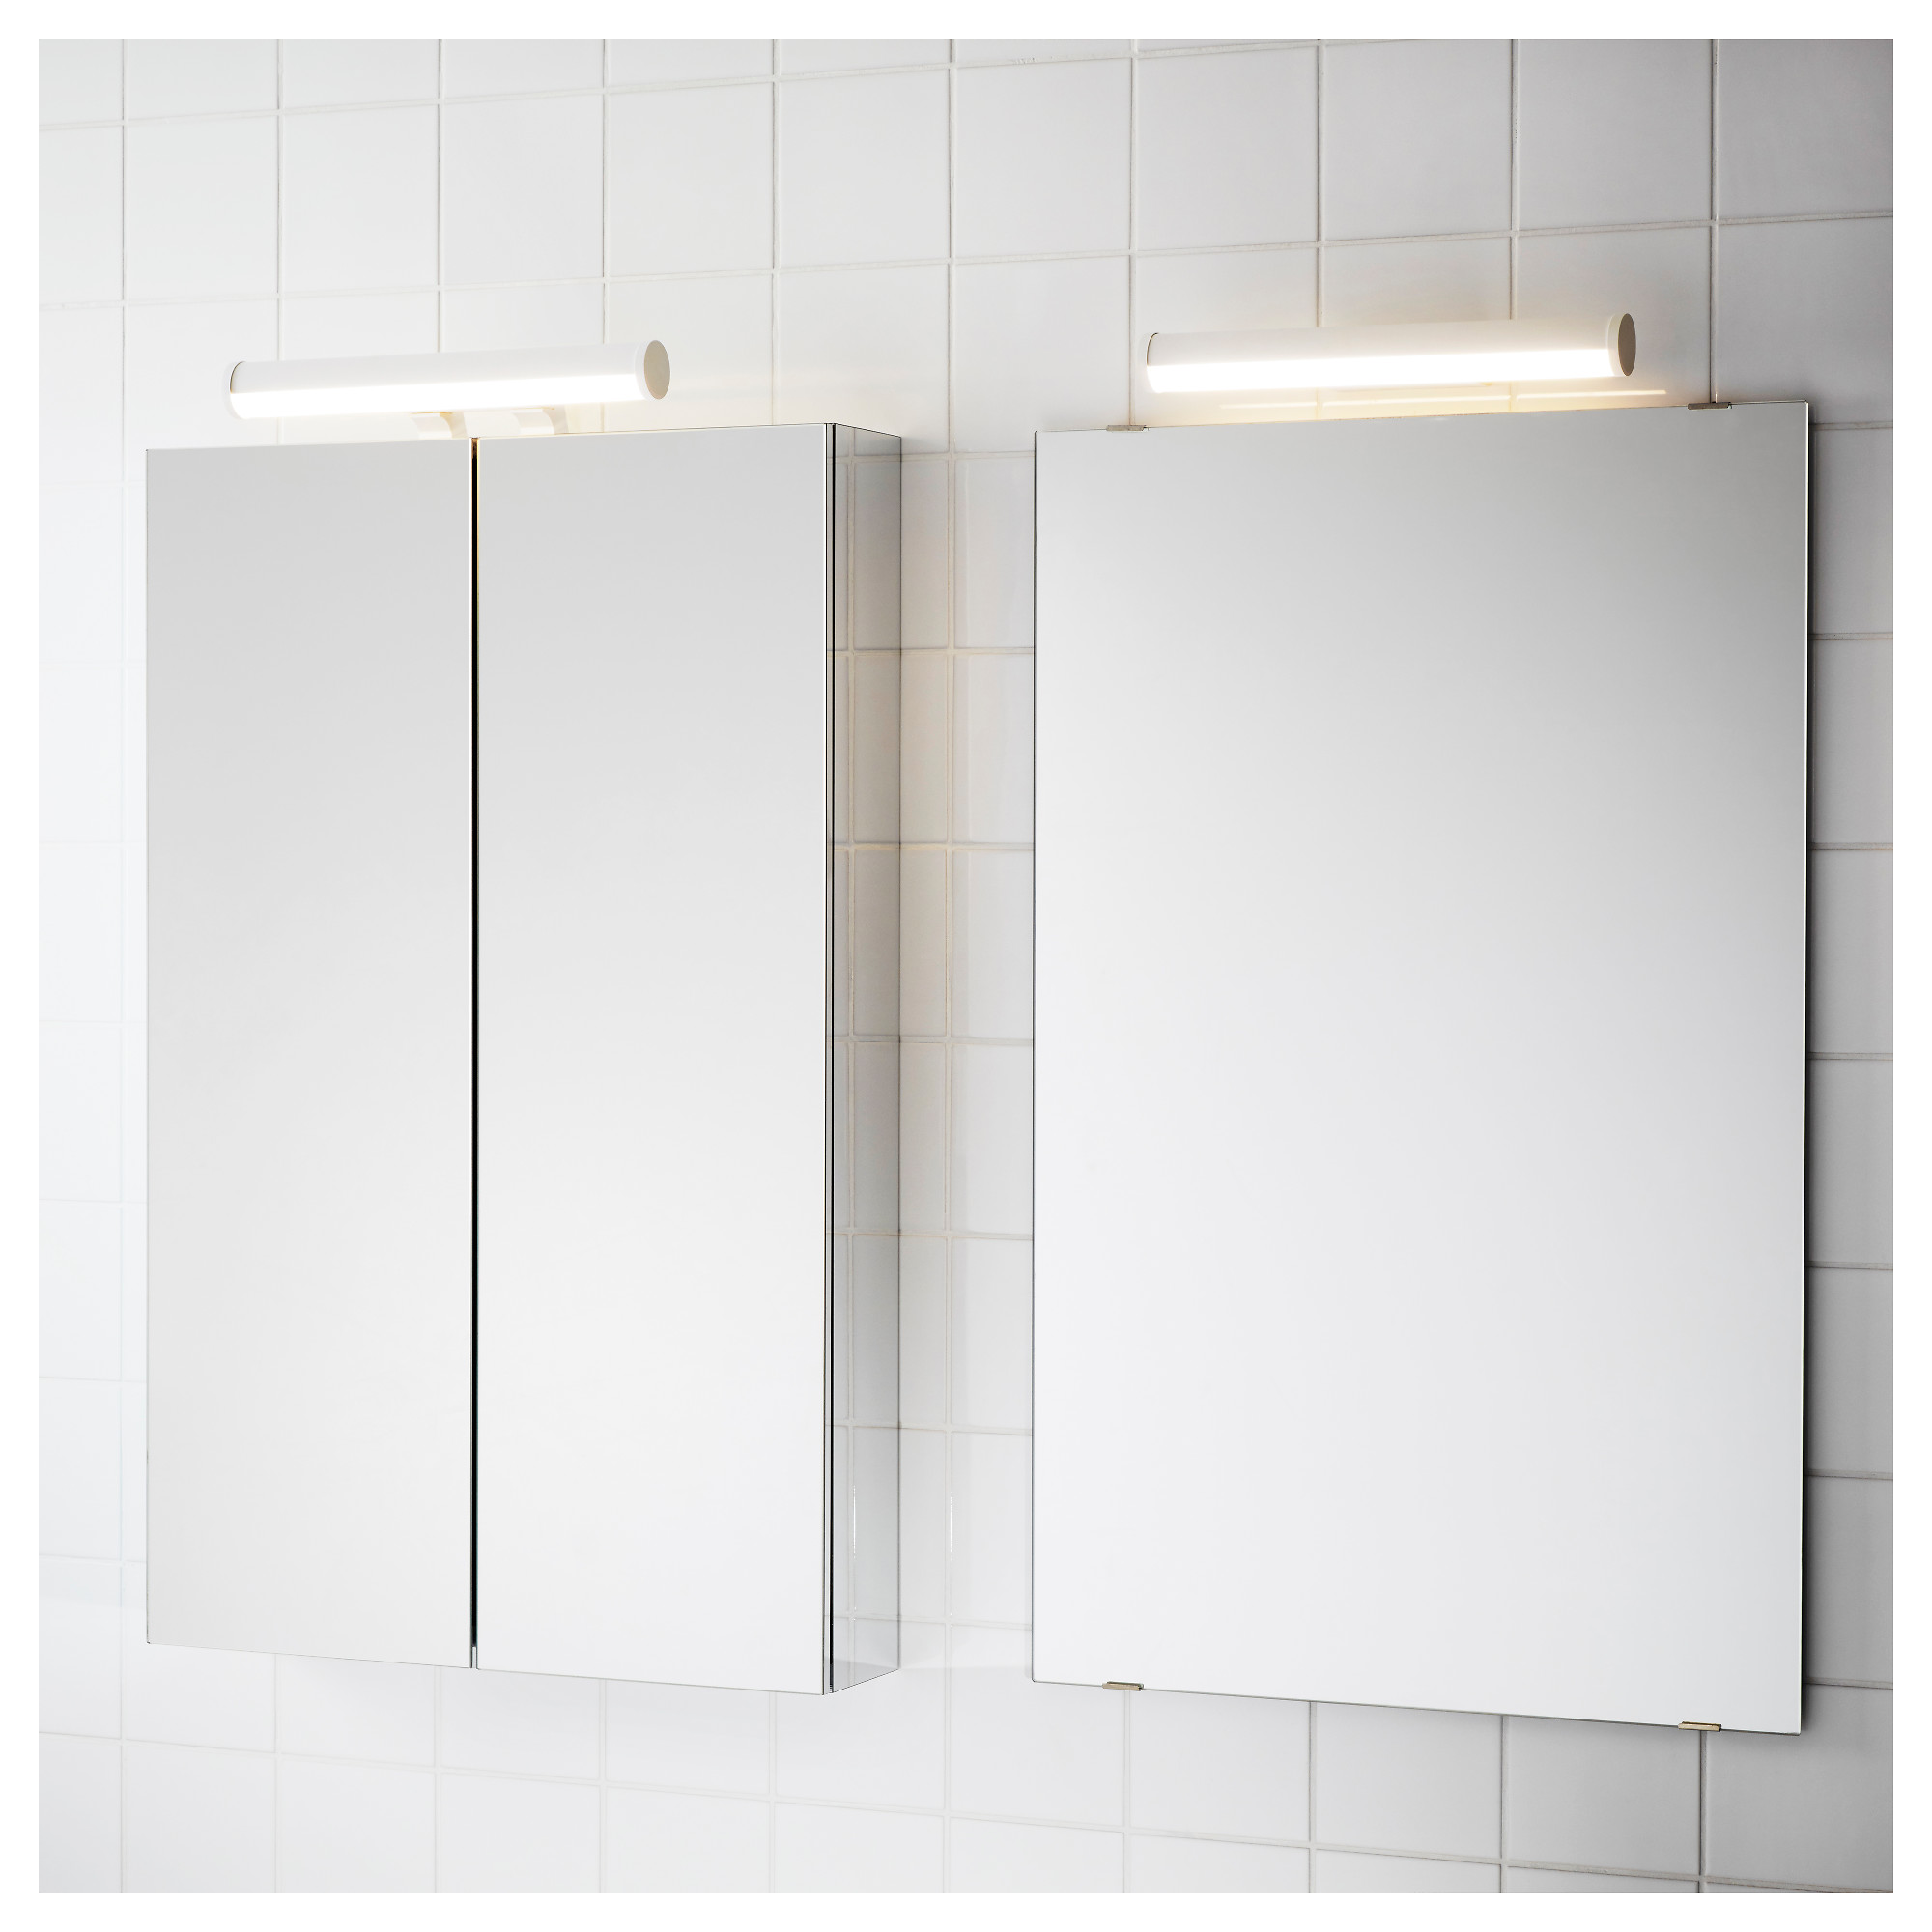 ÖstanÅ Led Cabinet Wall Lighting